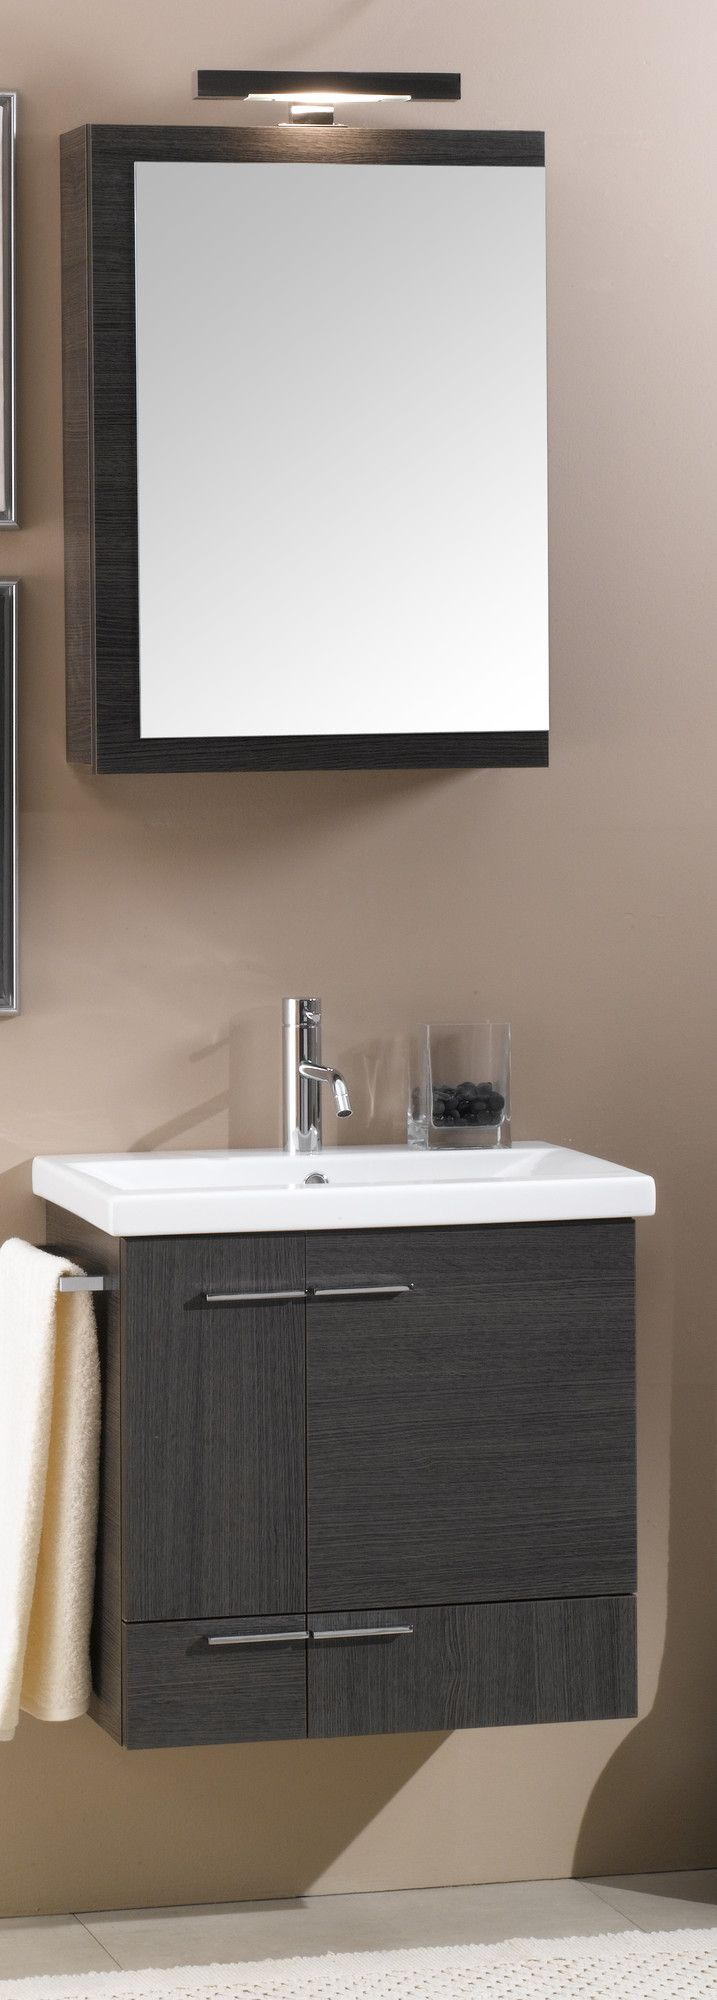 full size of bathroom 72 inch bathroom vanity vanity sink wa